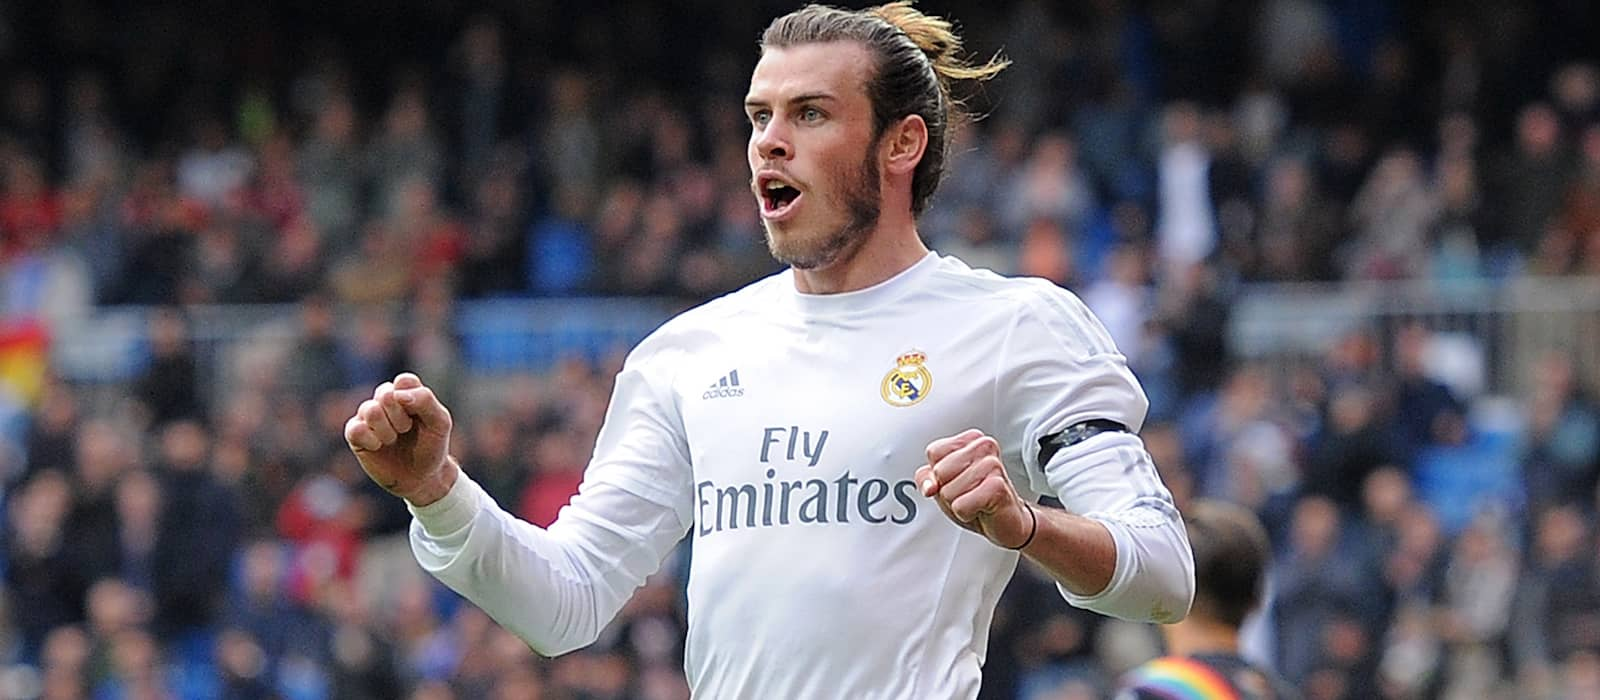 Manchester United unwilling to pay over £90m for Gareth Bale – report